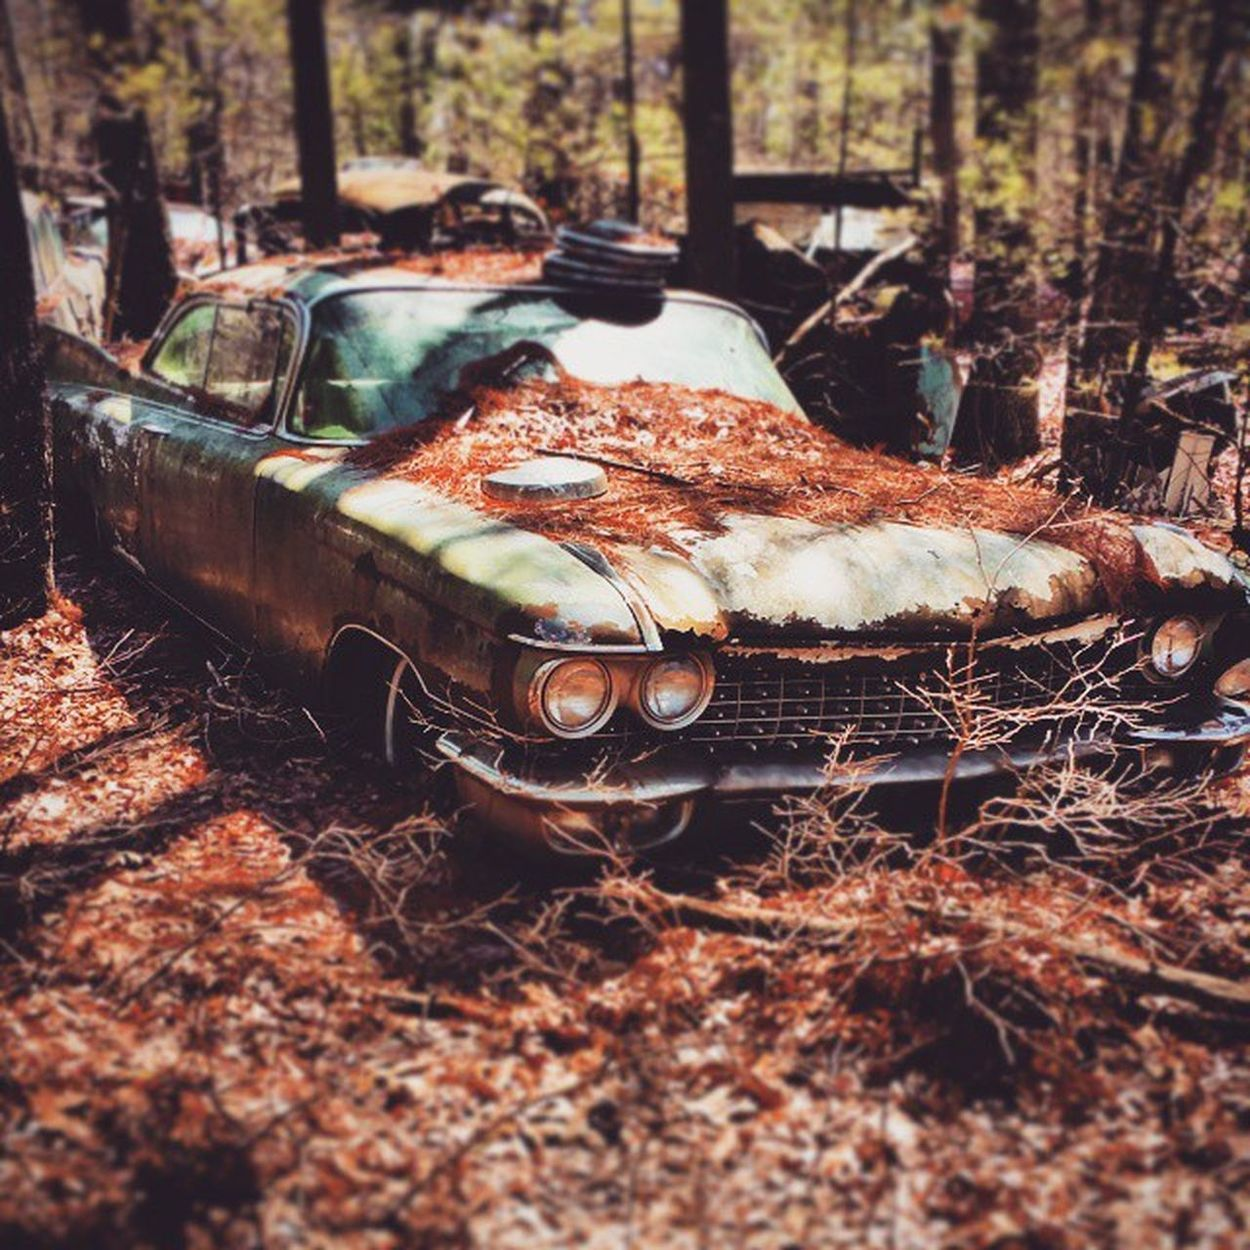 """nature always wears the colors of the spirit"" - ralph waldo emerson Old Cars Junking Urbanexploration Adventure Oldbutnotforgotten Tiltshift Vintage Cars Gorgeous Eyeemphotography Photooftheday Eye4photography"